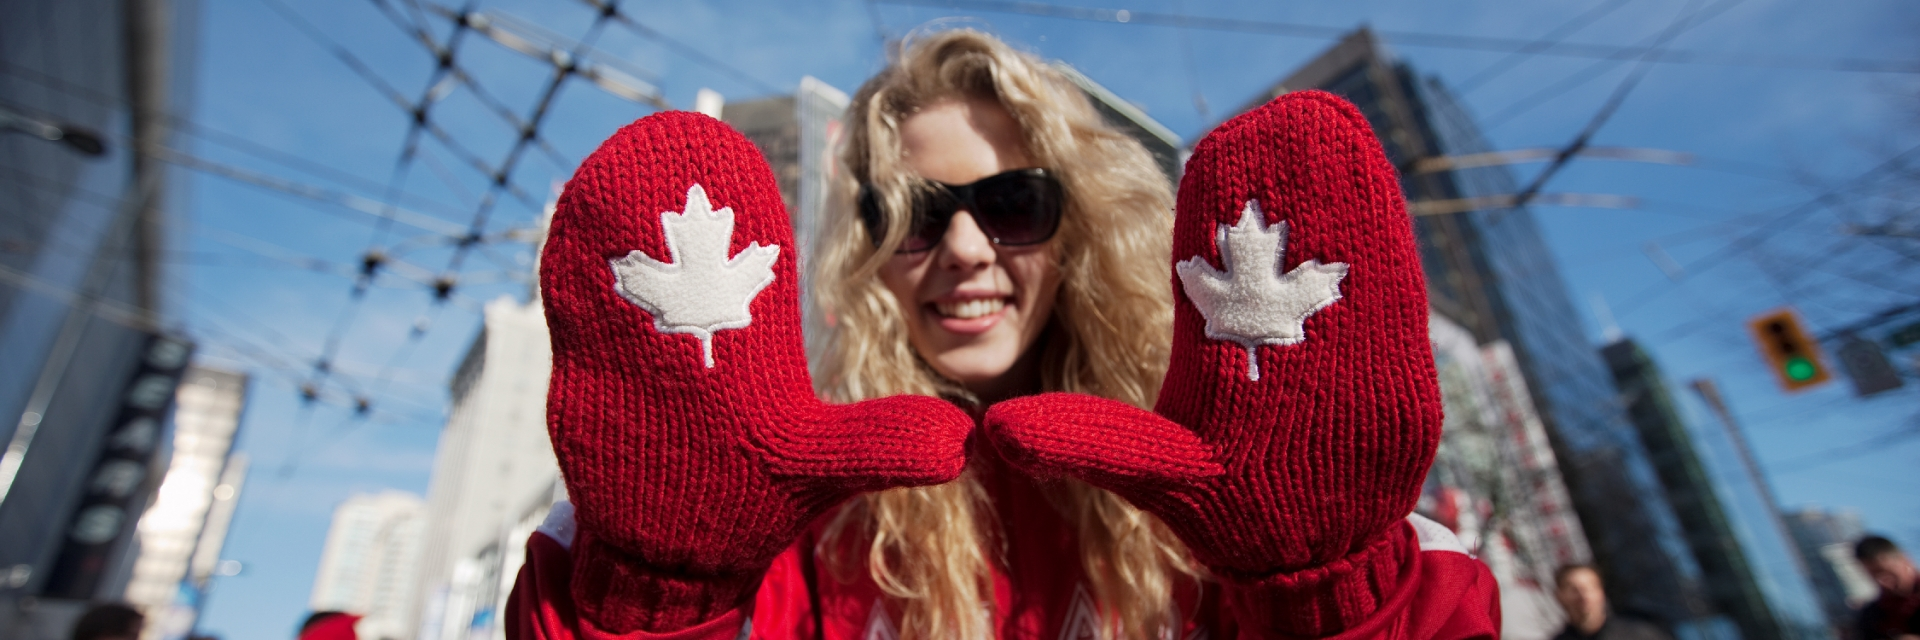 A woman with gloves with Canadian maple leafs on them.